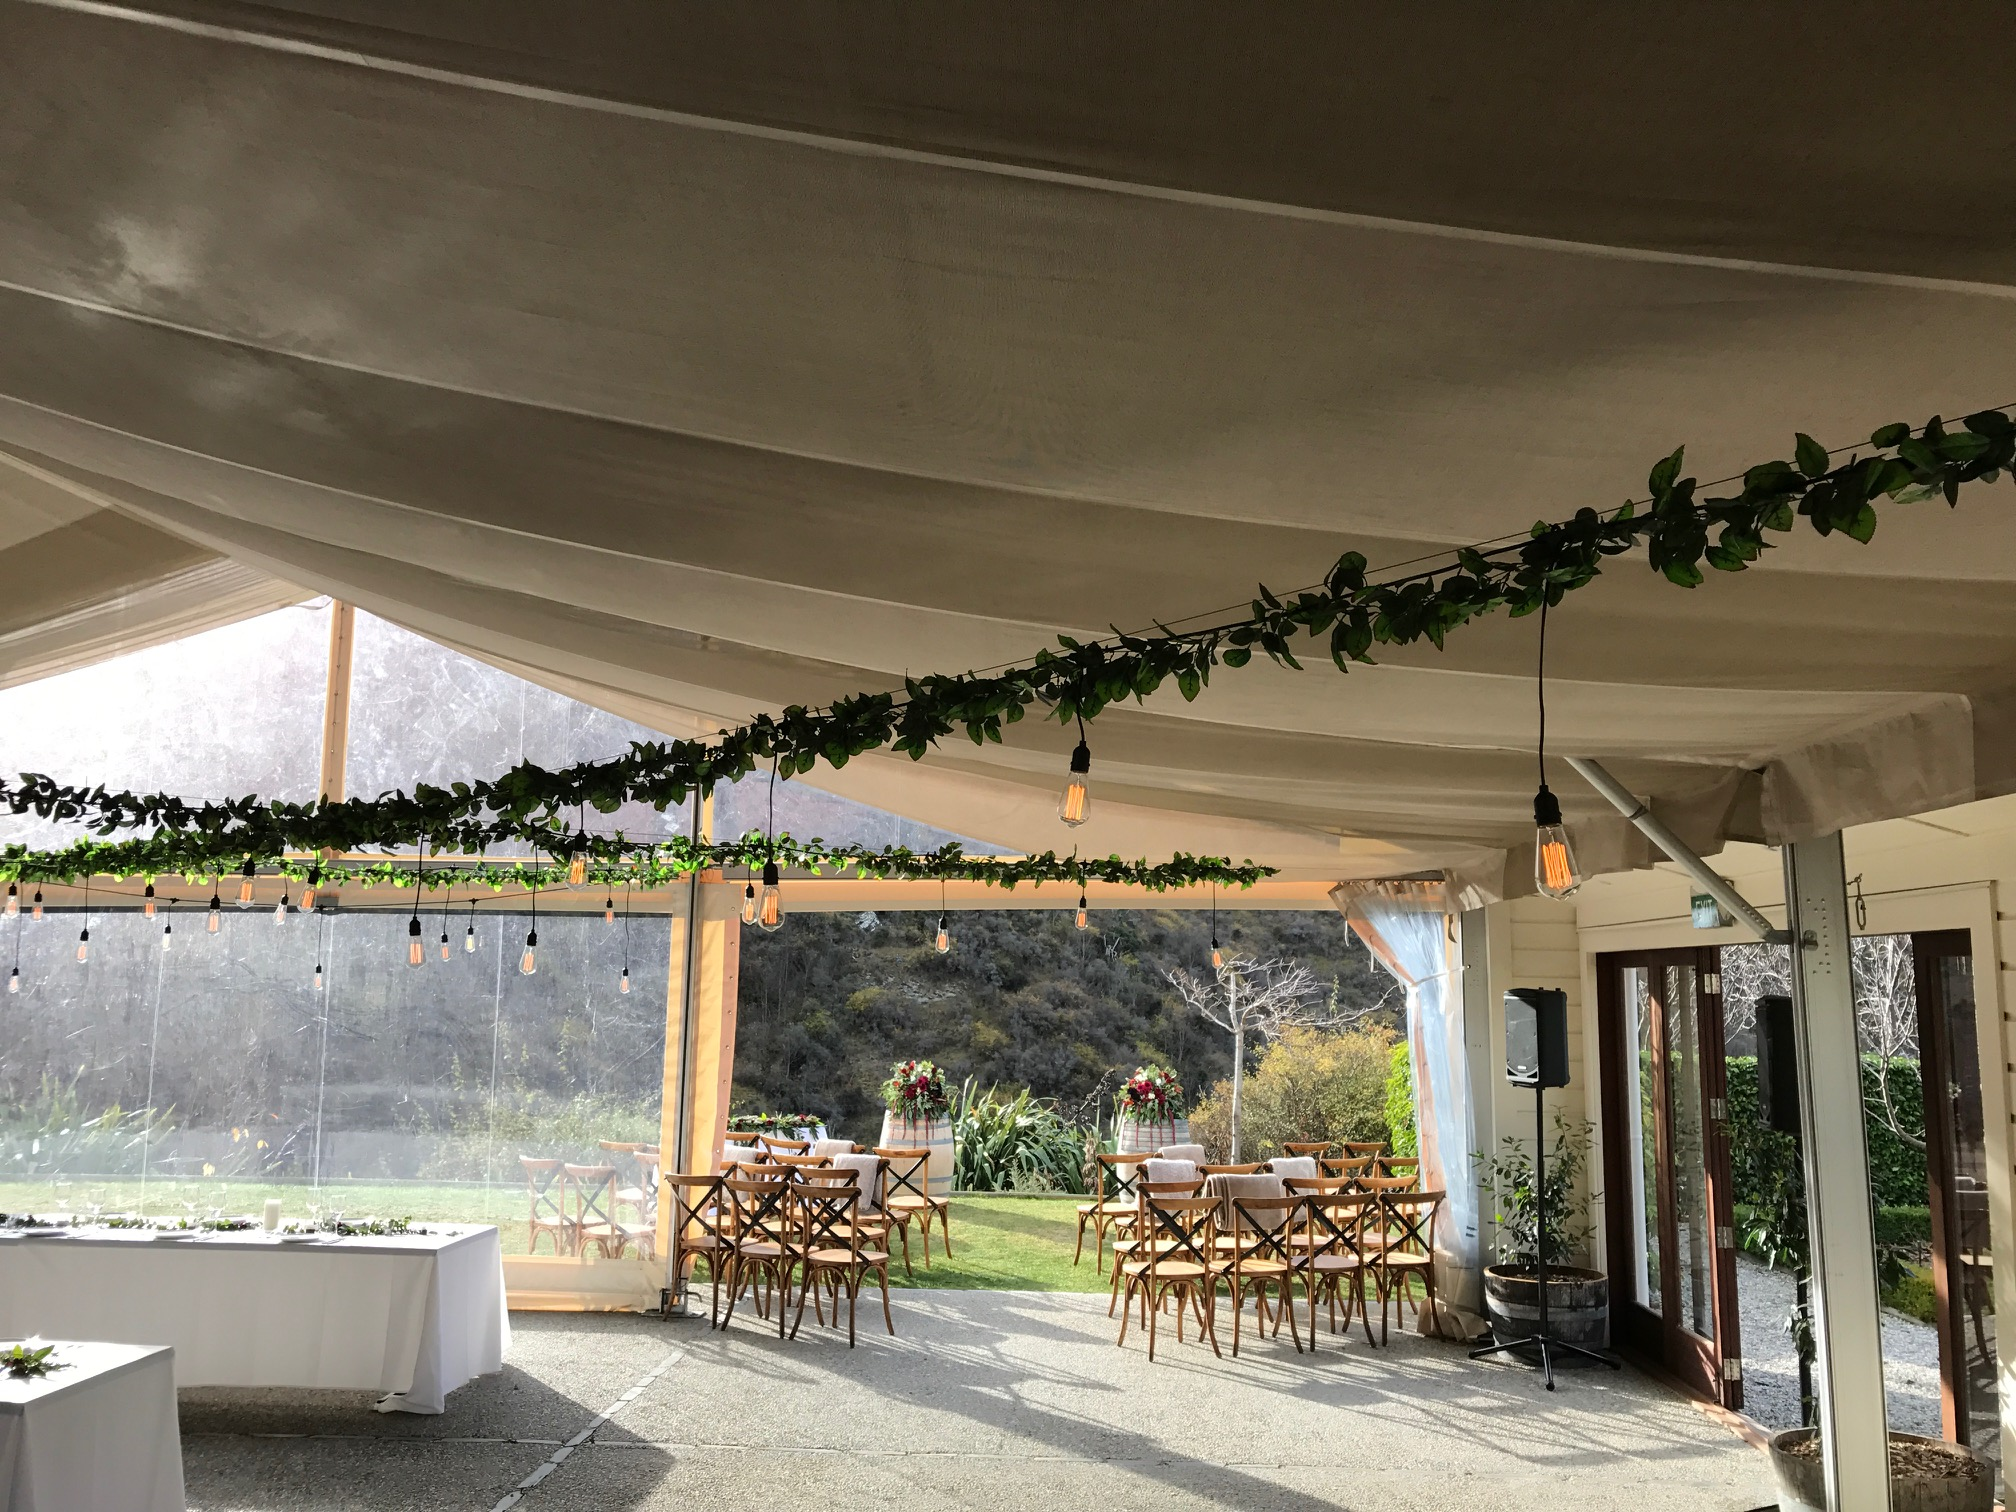 Festoons and artificial foliage at The Winehouse